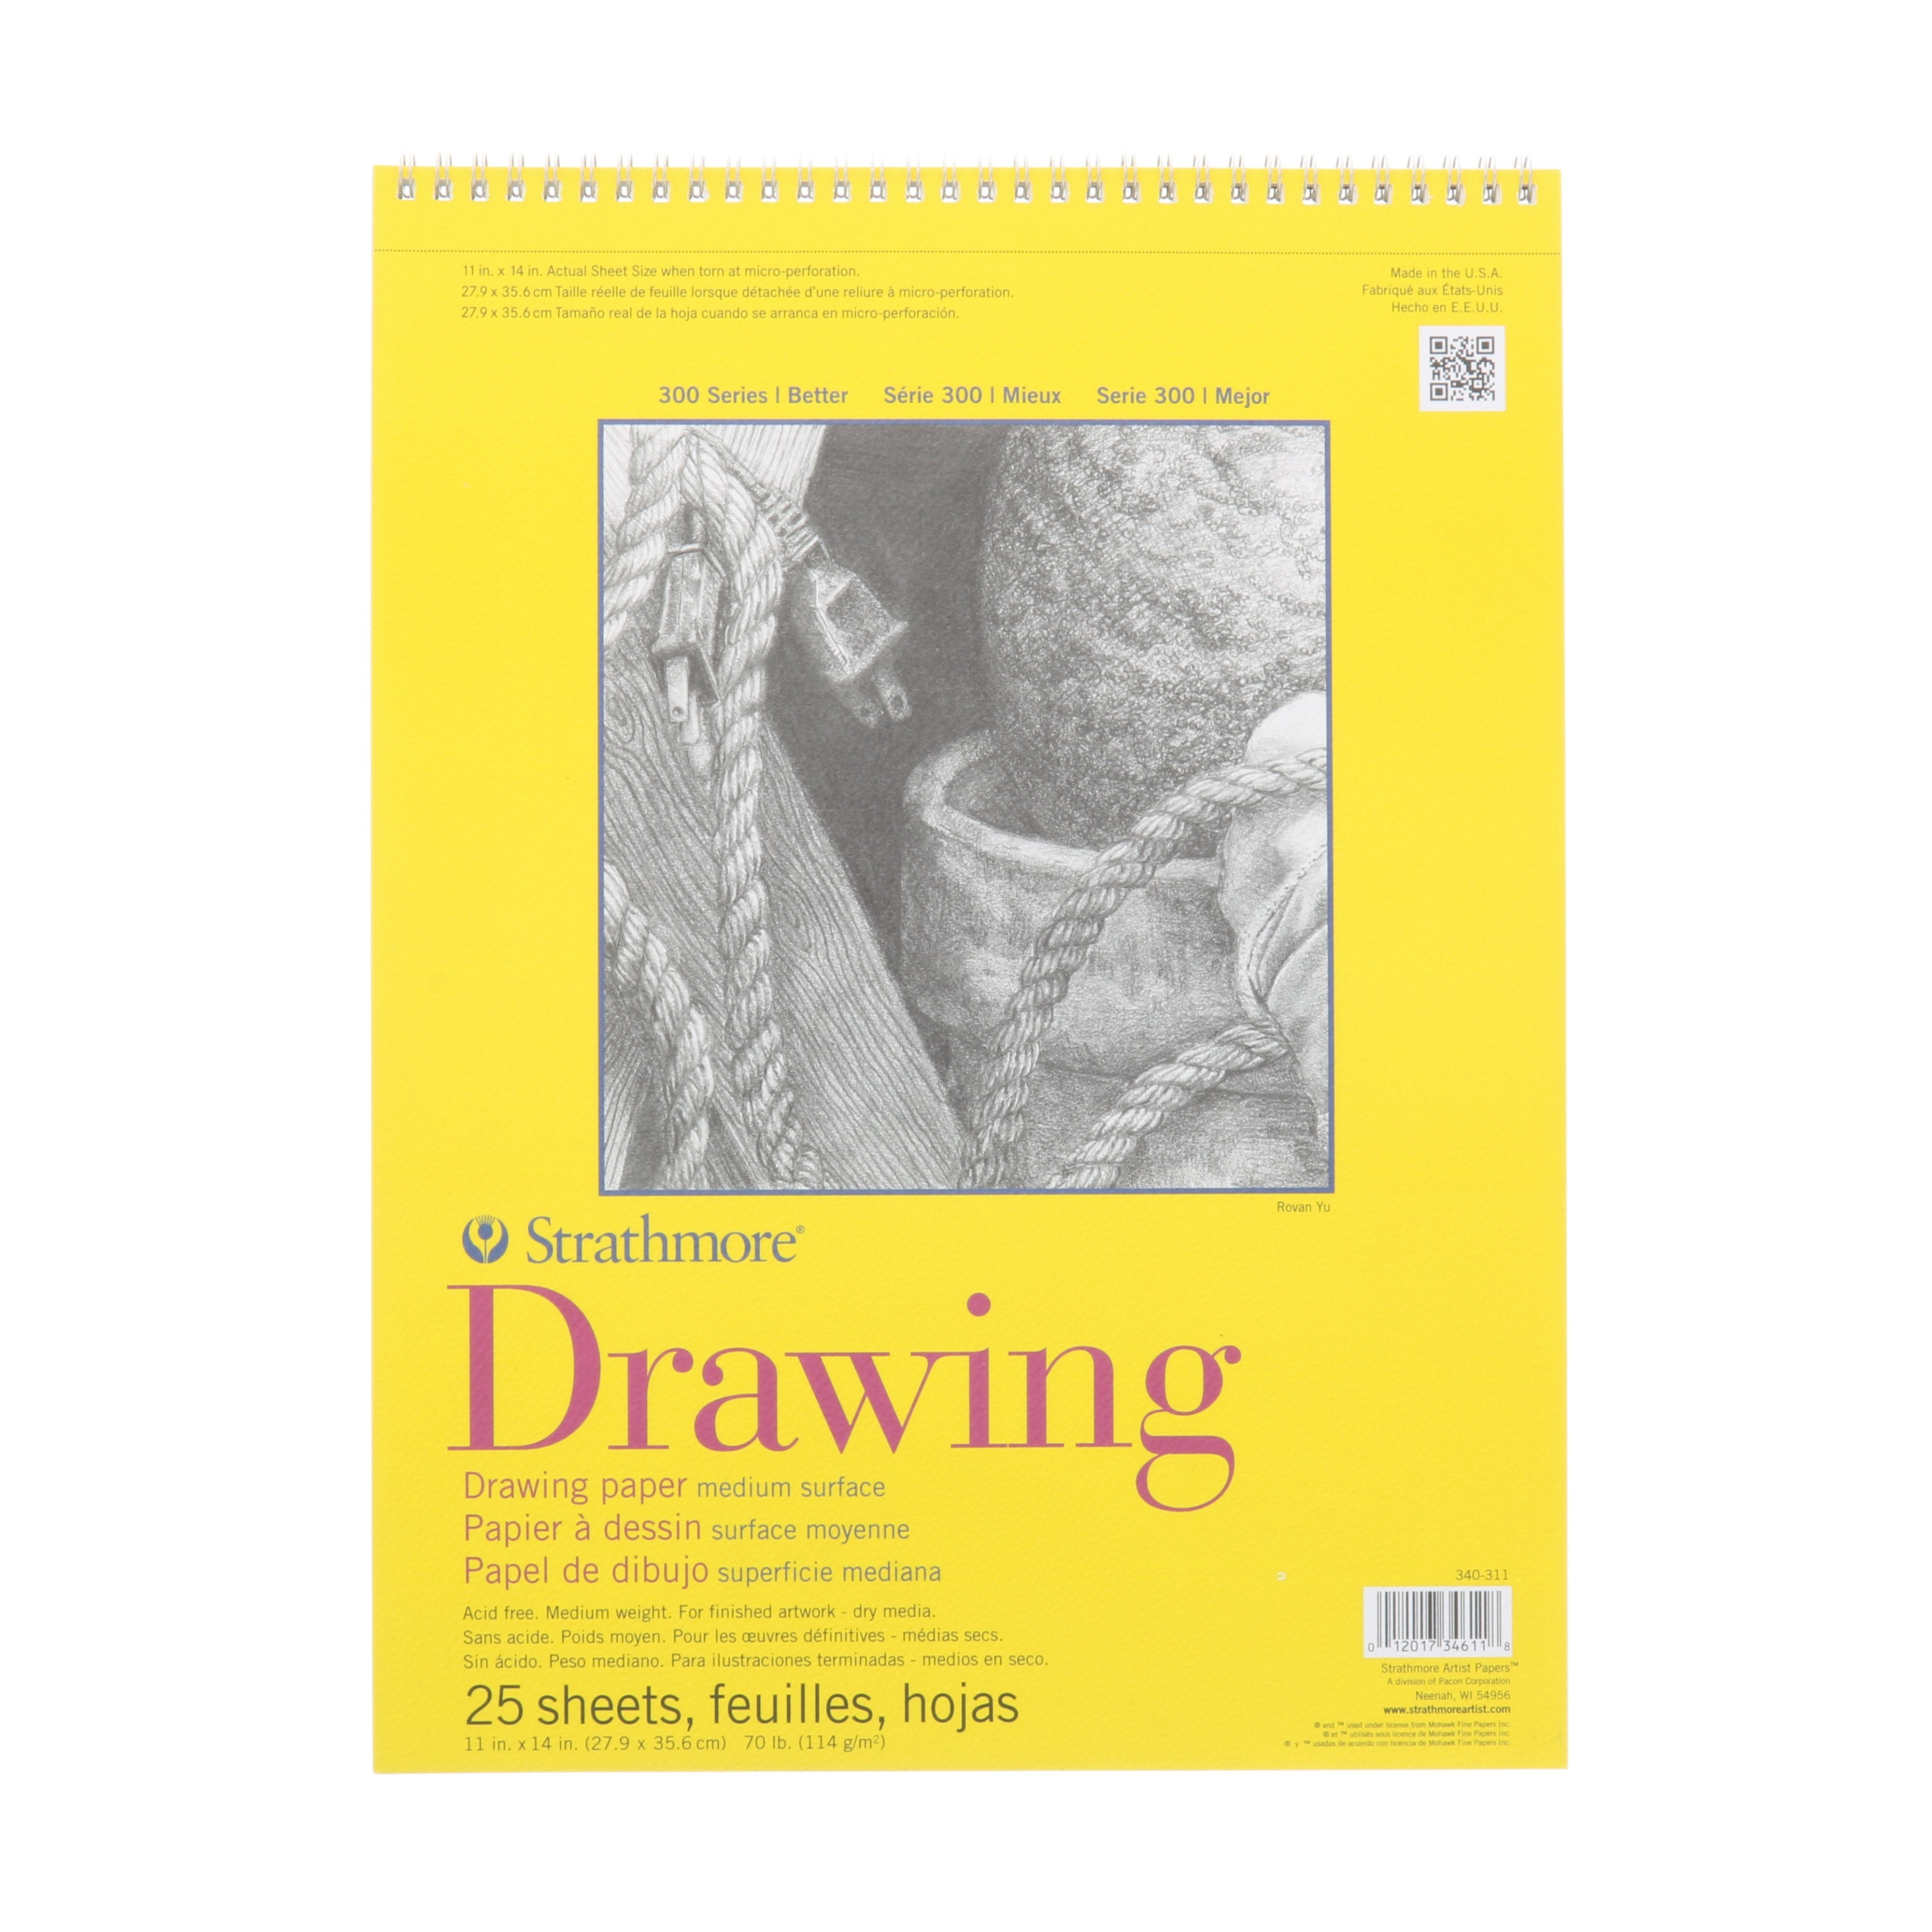 "Strathmore Drawing Paper Pad, 300 Series, 25 Sheets, 11"" x 14"", Spiral Bound"